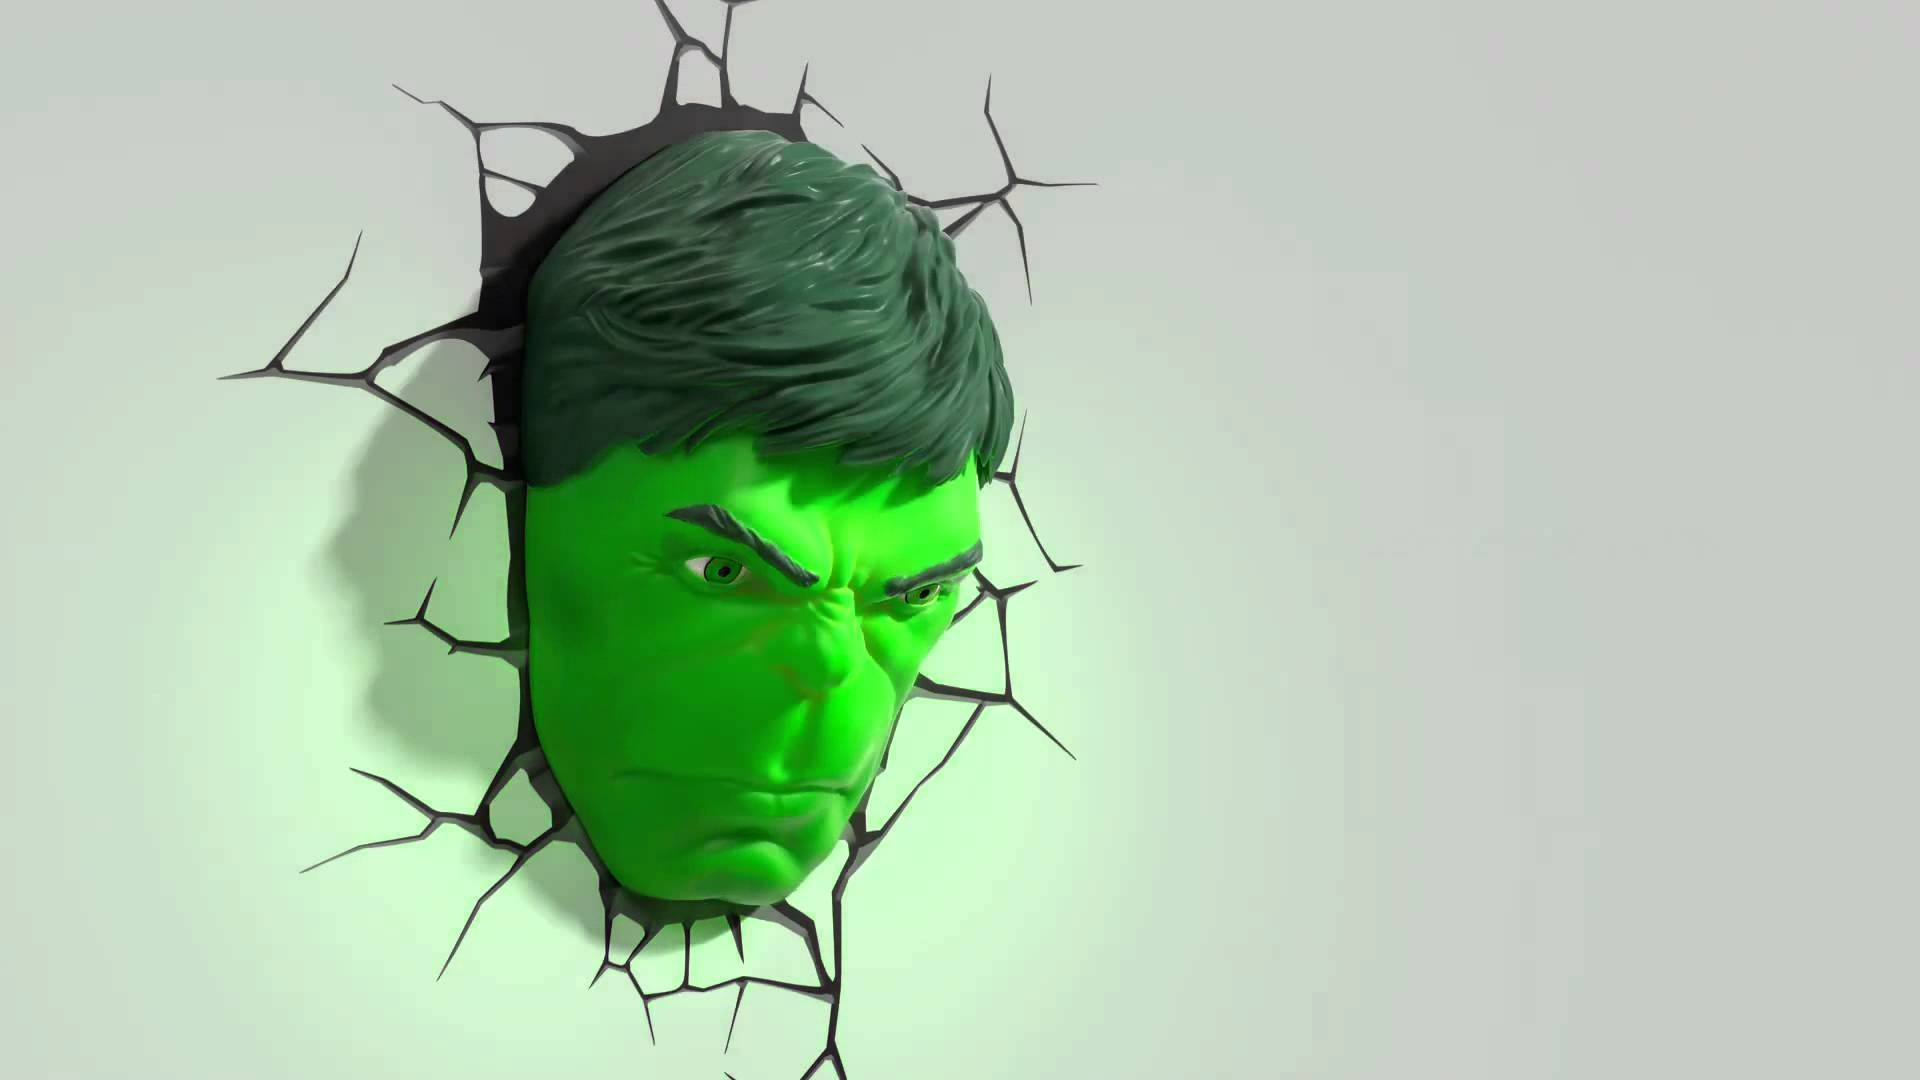 3D Fx Deco Lights Avengers Hulk Face Promotional Video – Youtube With Regard To Most Popular Hulk Hand 3D Wall Art (View 1 of 20)